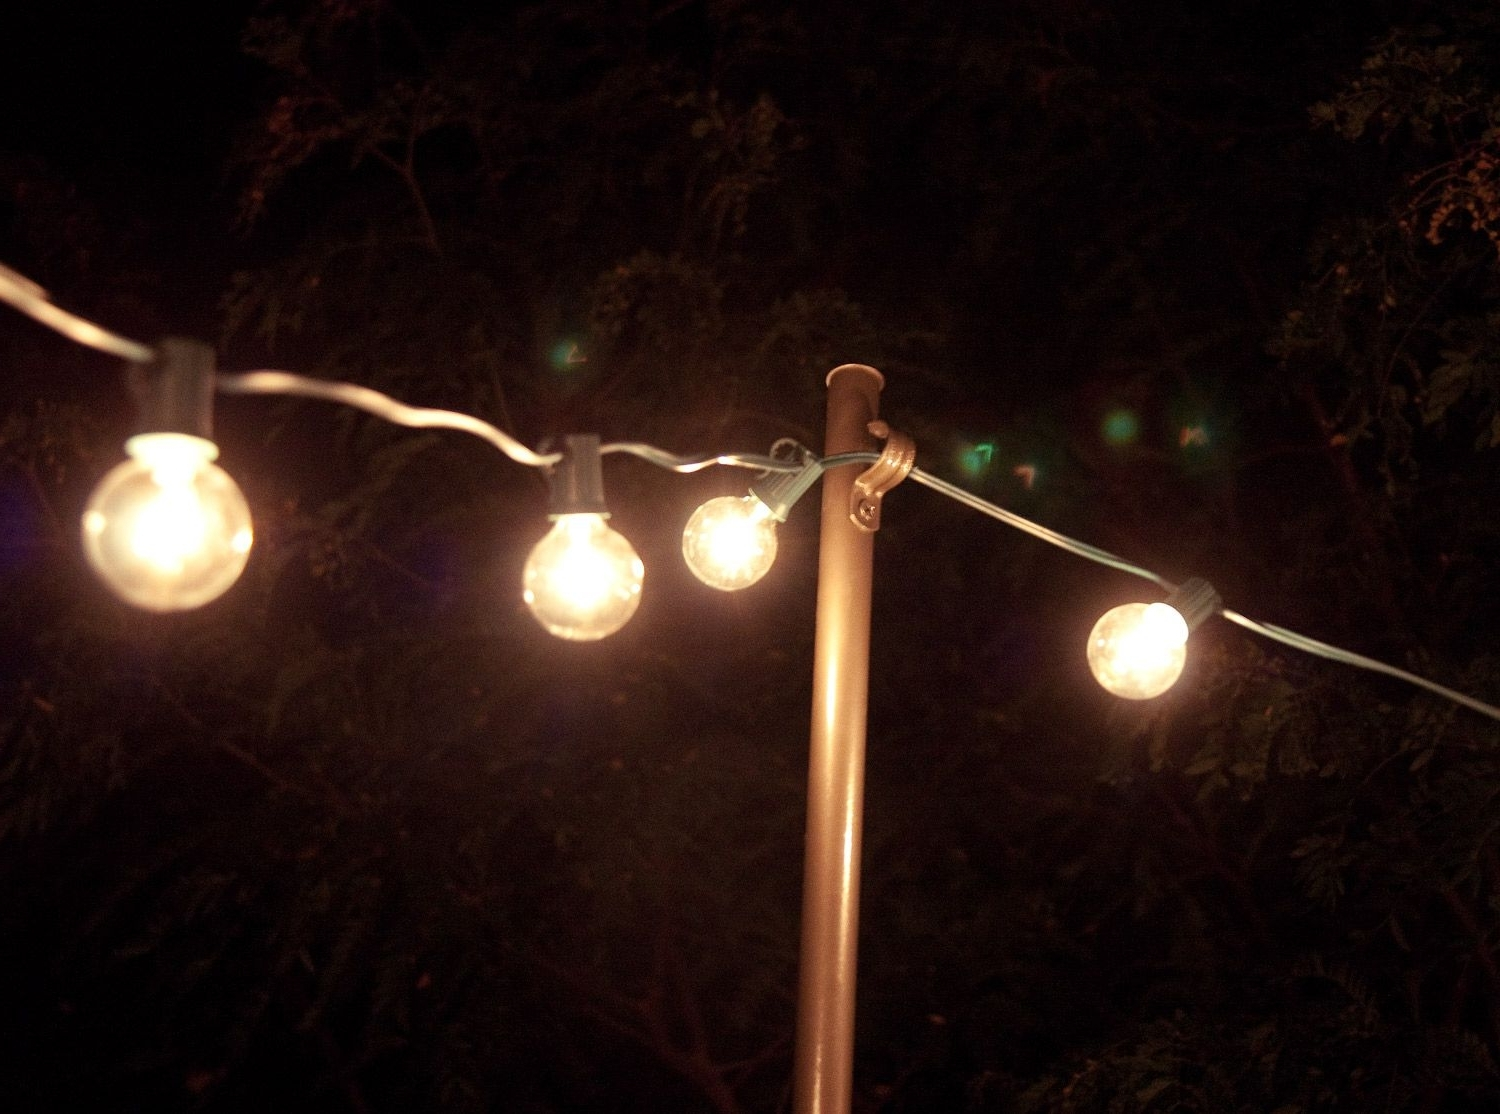 Well Known I've Been Wanting Outdoor String Lights For Our Deck For A Looooong With Regard To Hanging Outdoor Light On Rod (View 18 of 20)